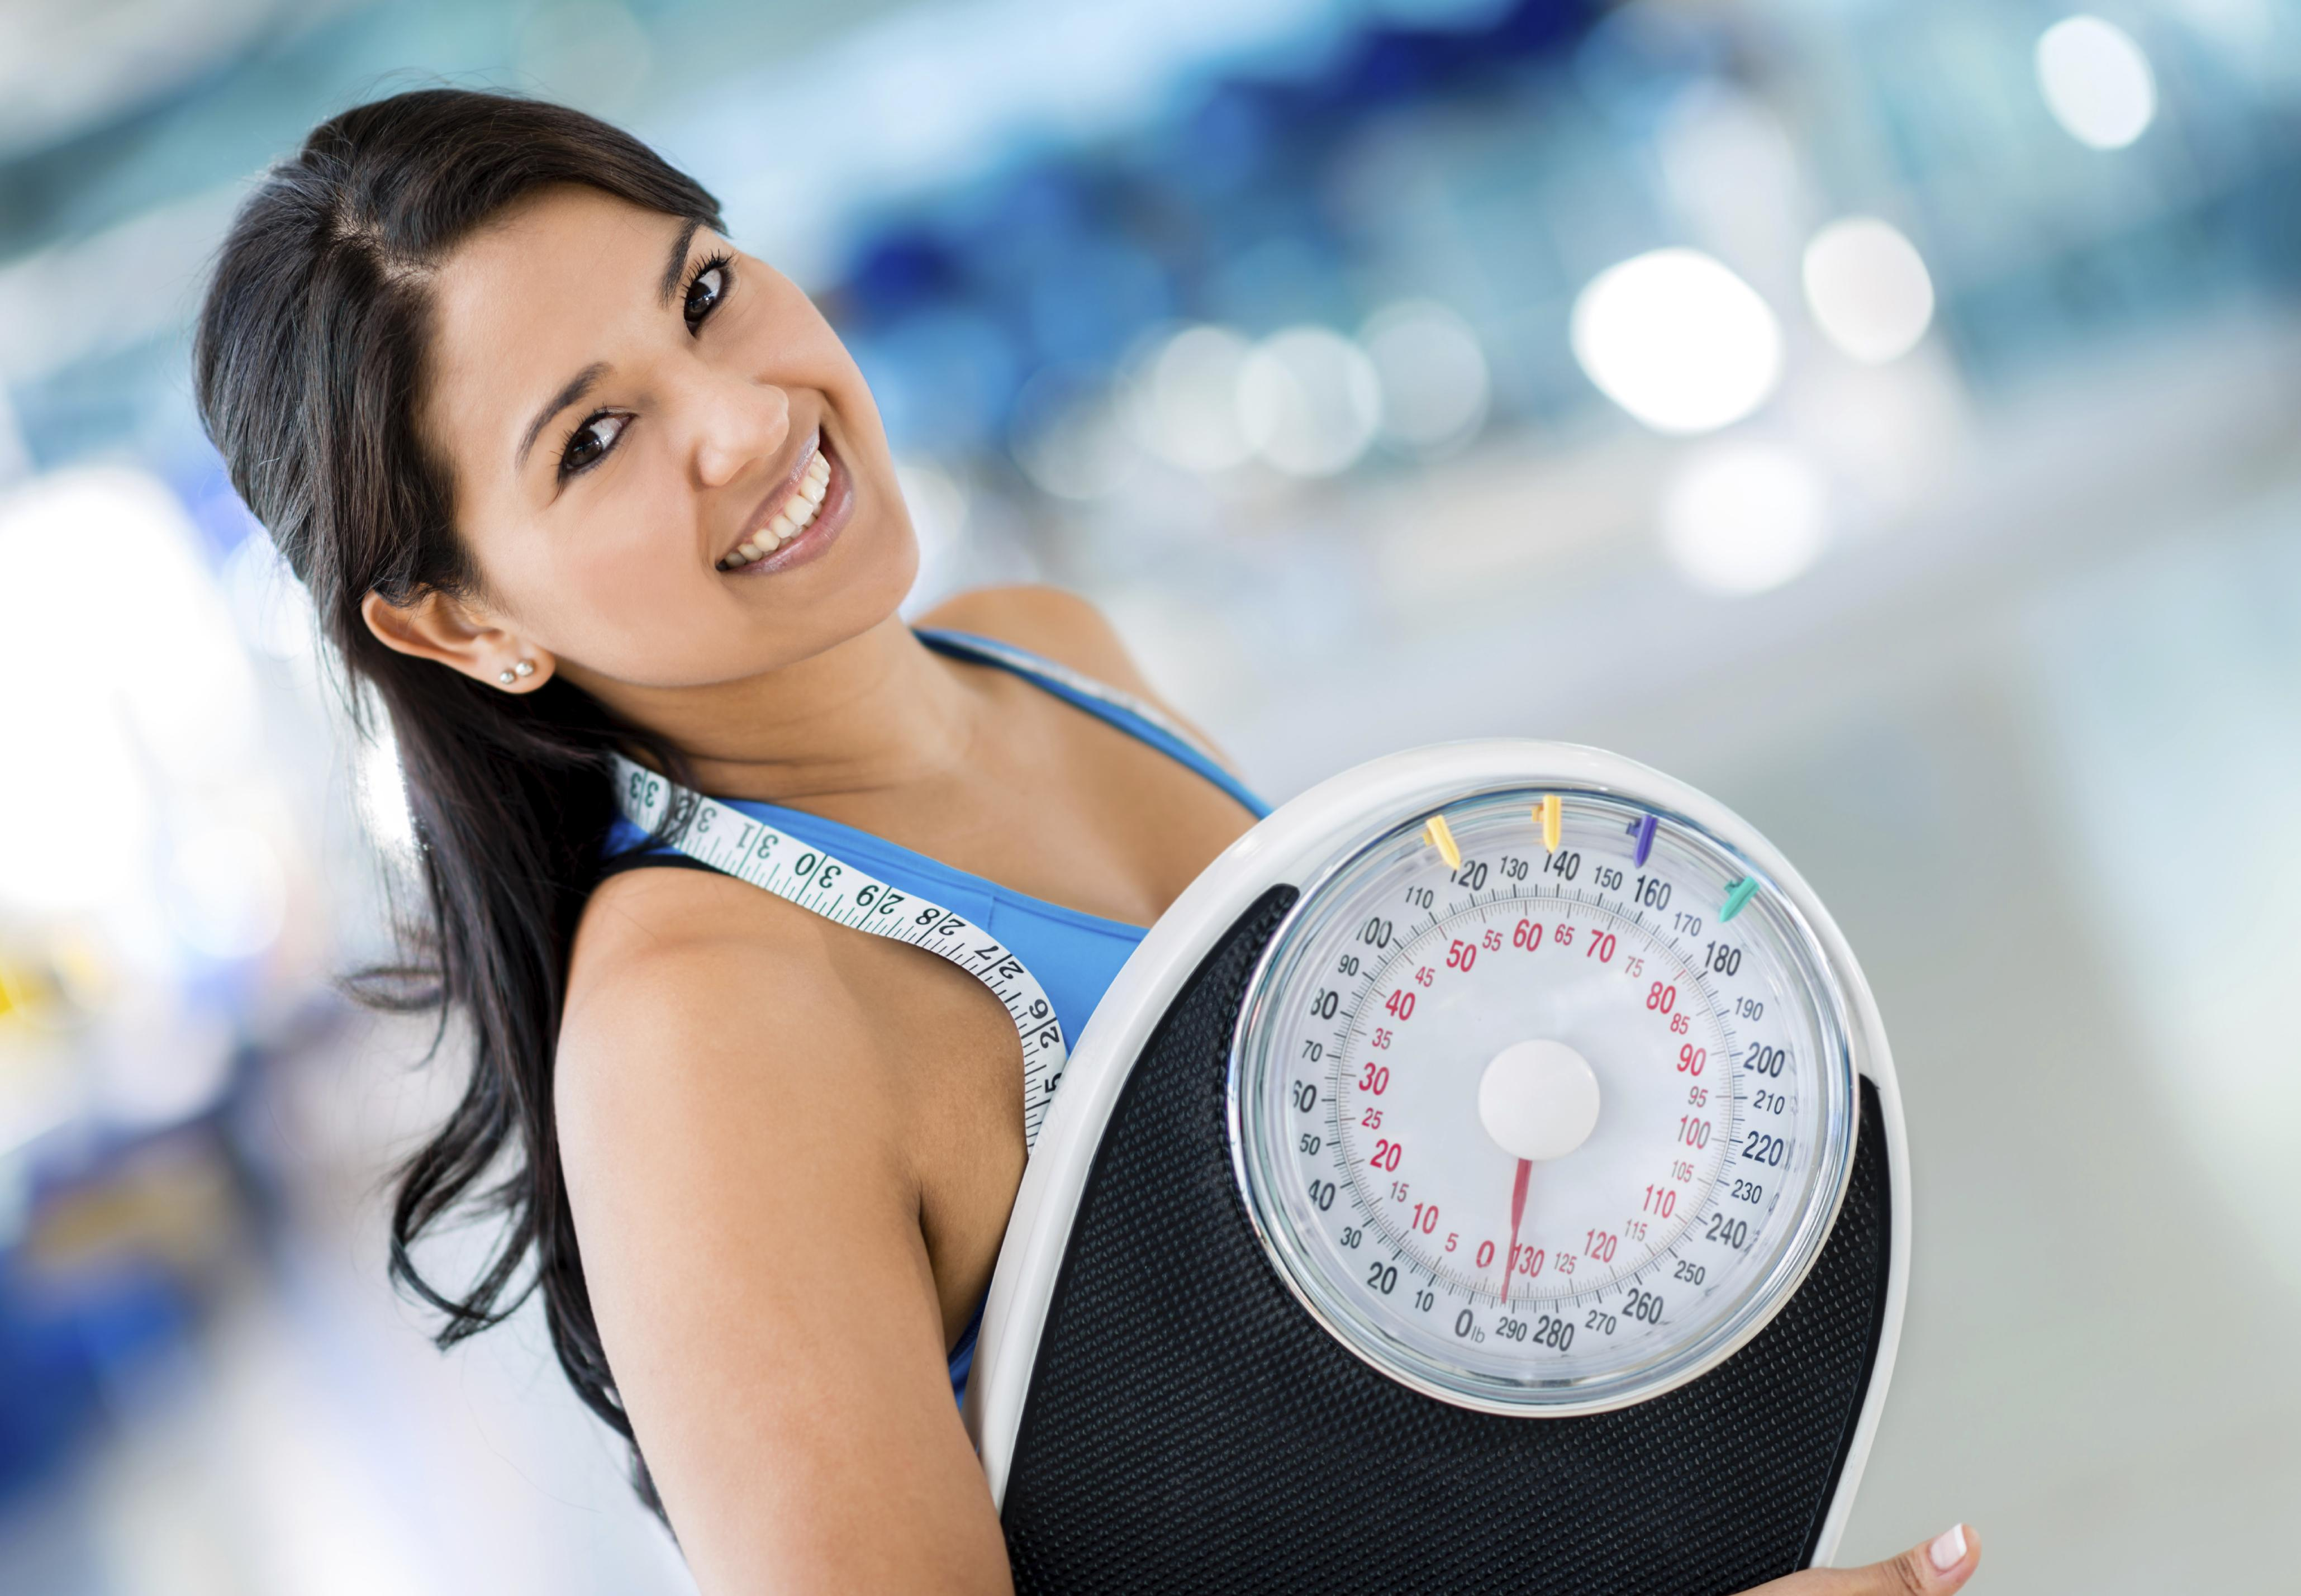 Inland Valley Medical Center - Weight-loss Su